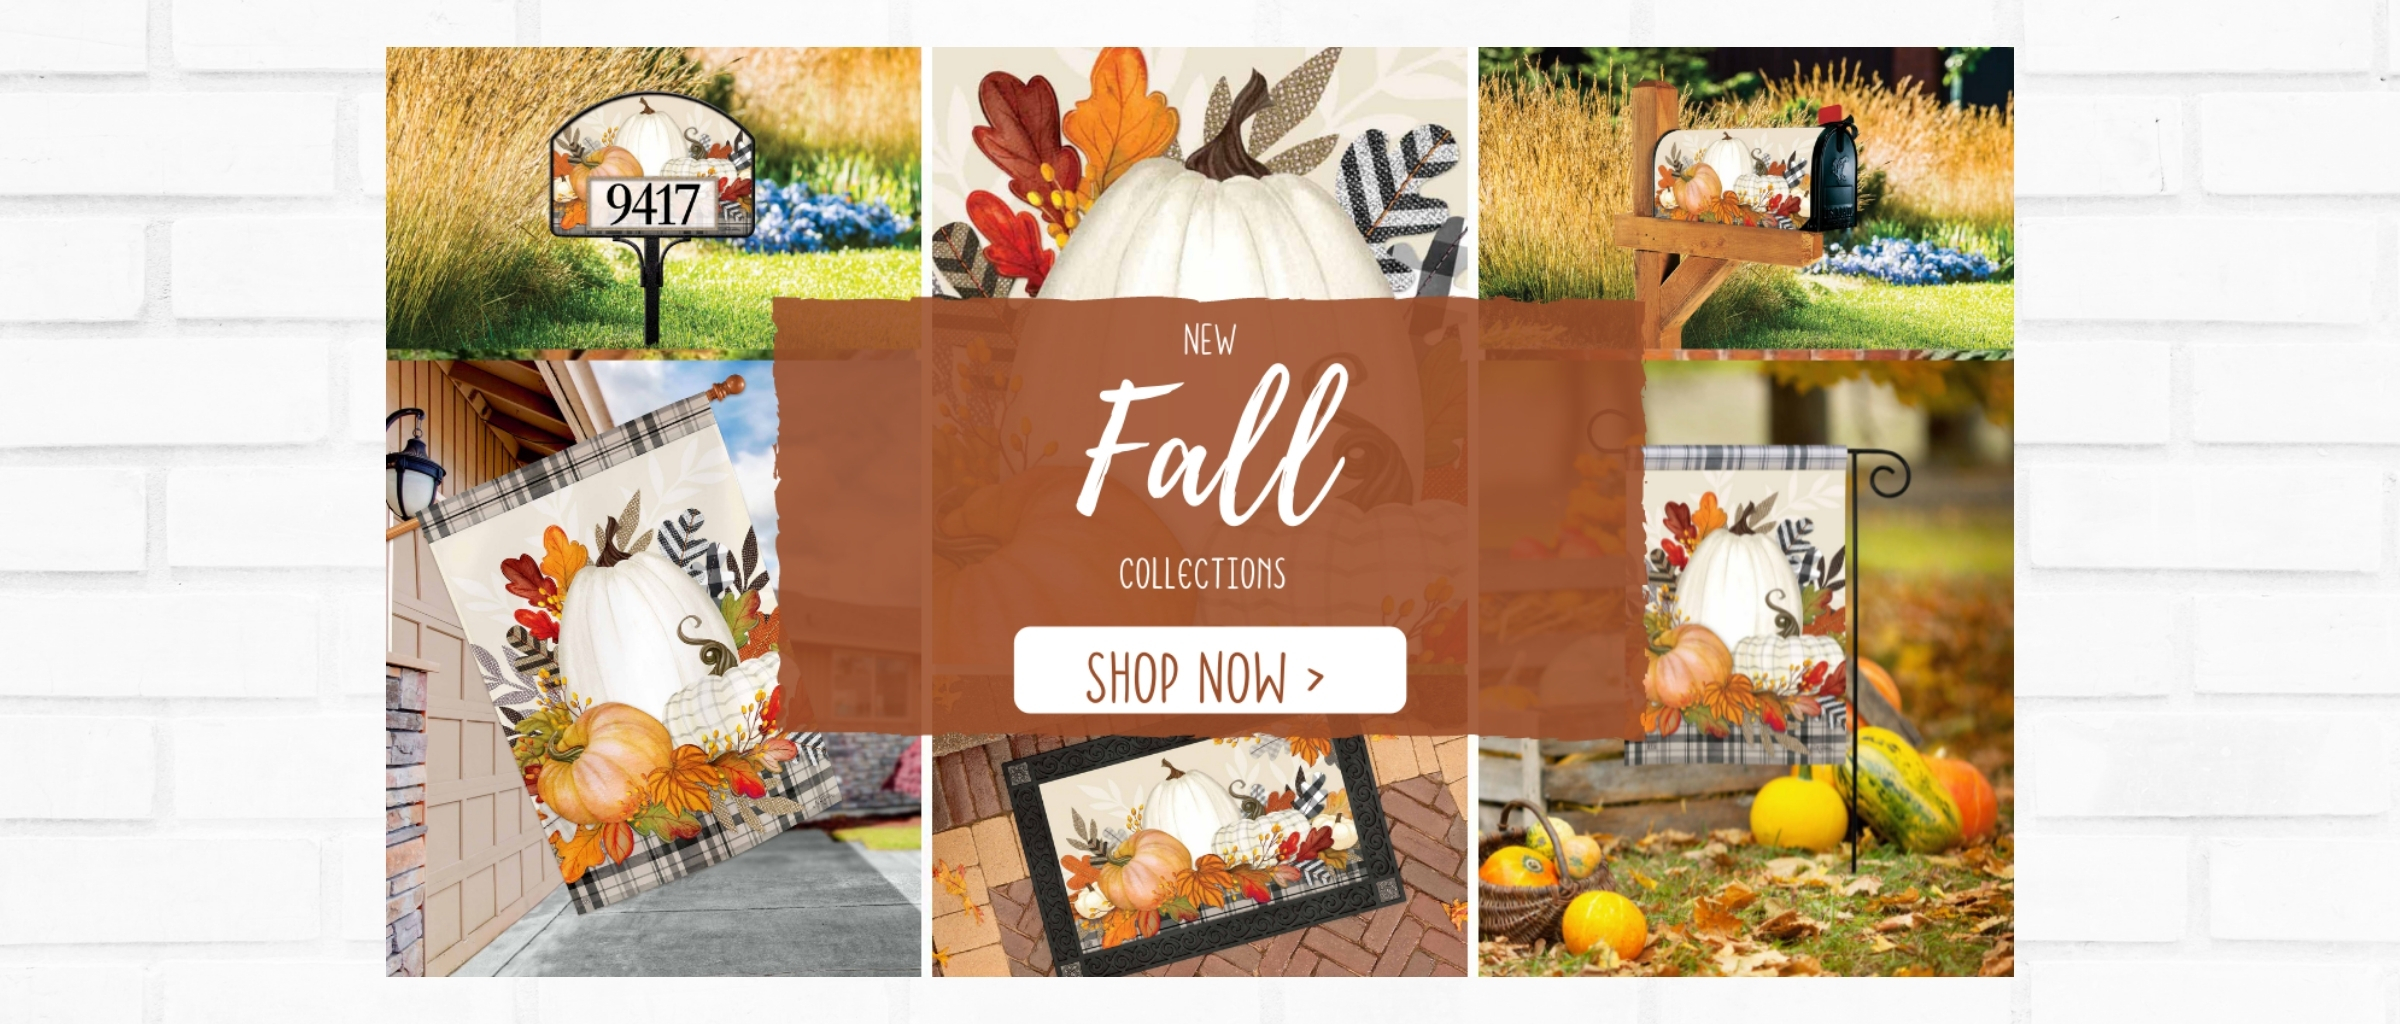 Fall Collections are here